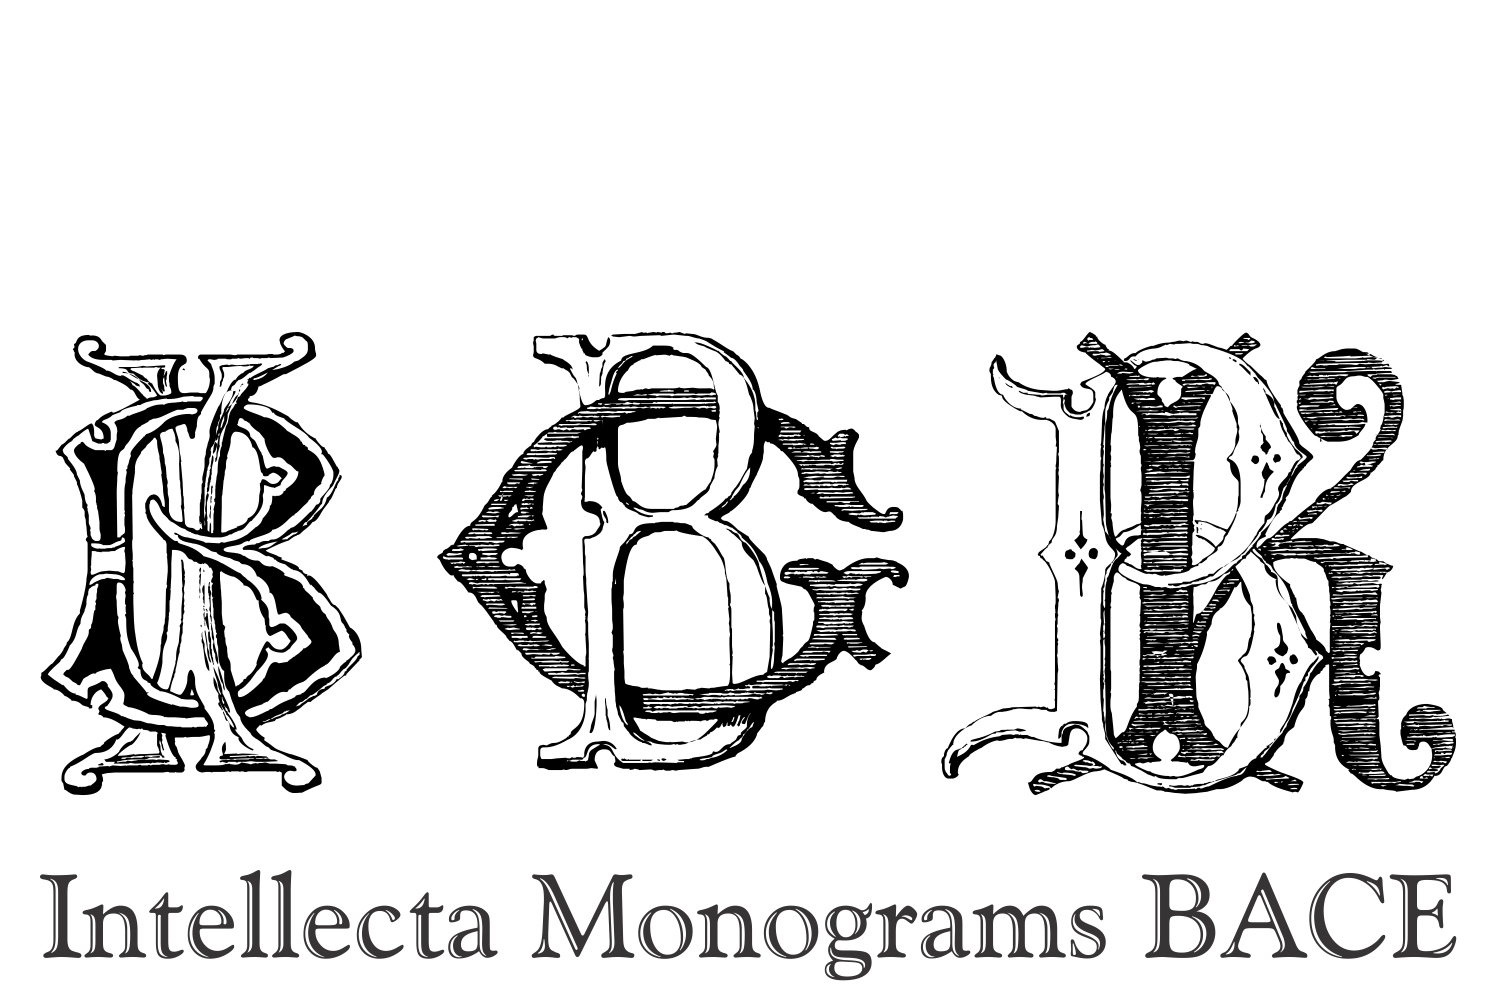 Intellecta Monograms BACE example image 4